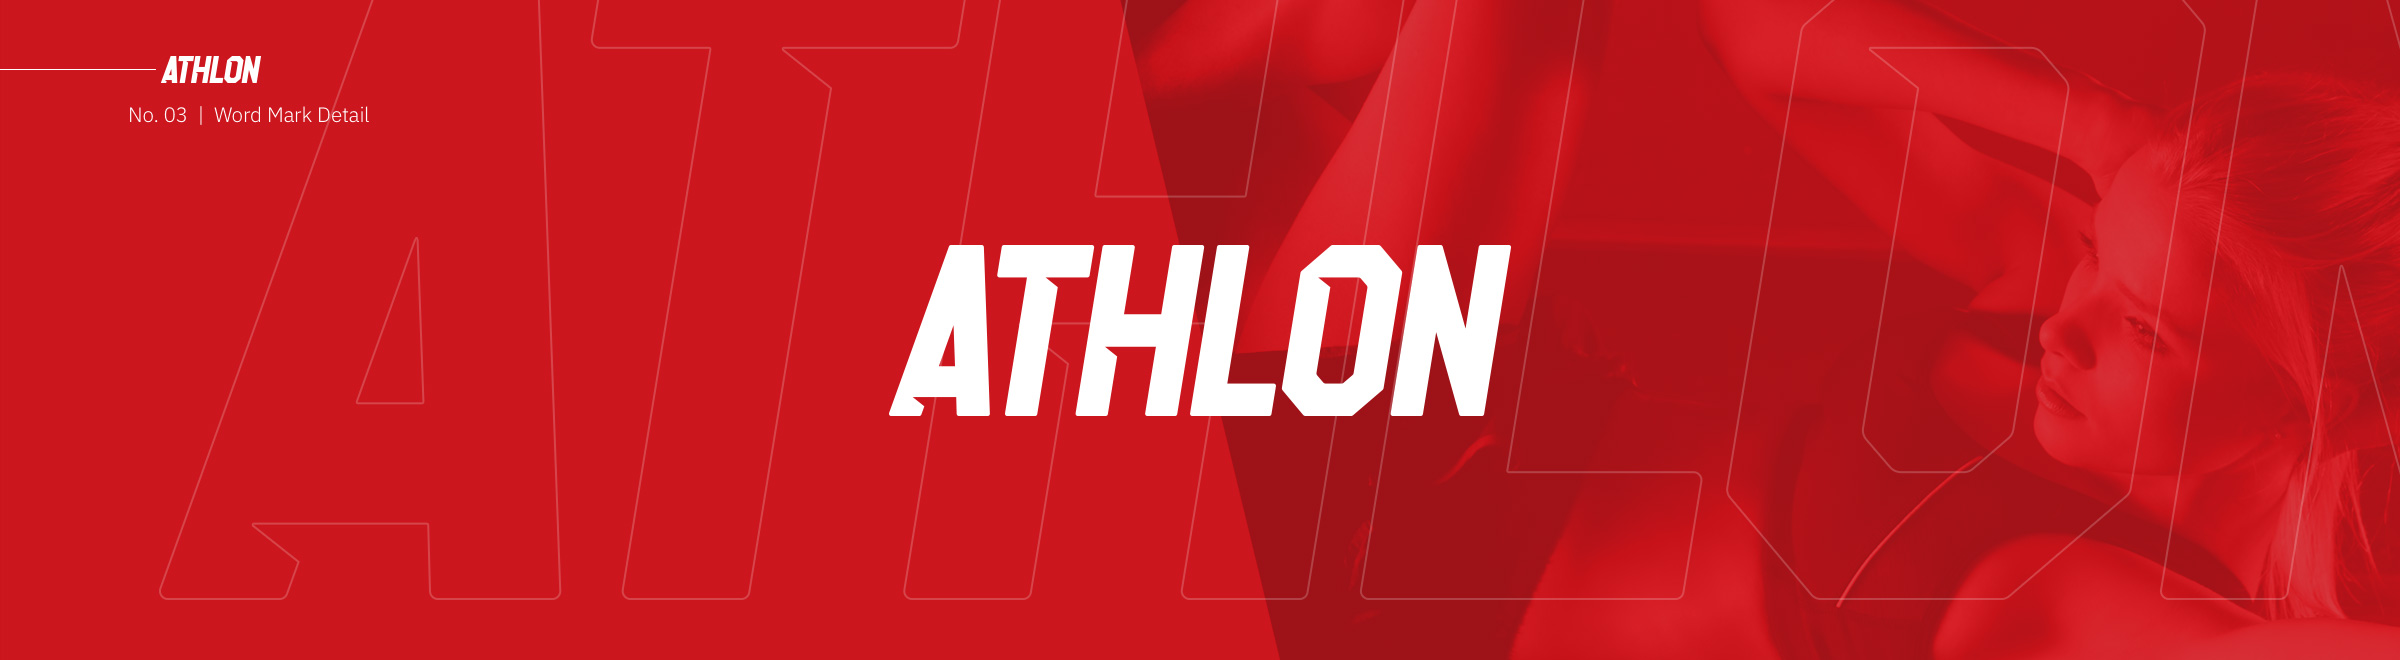 Athlon-Brand-Refresh-03-Word-Mark-Detail